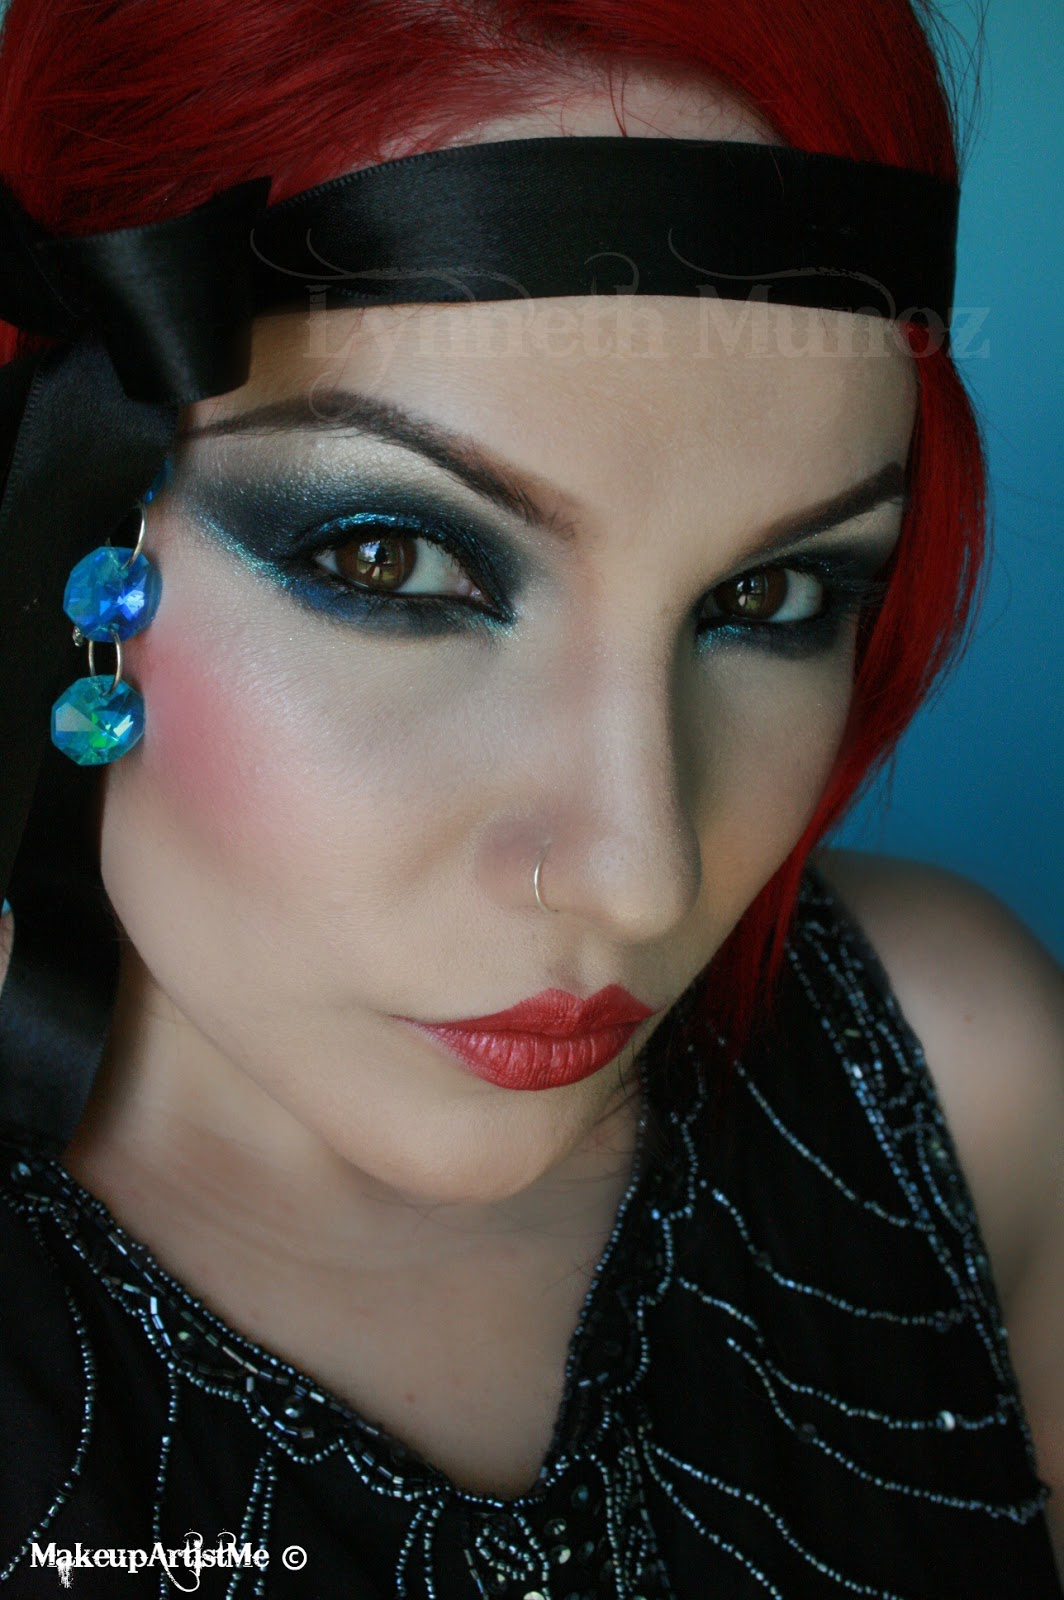 Make Up Tutorials Youtube: Make-up Artist Me!: 1920s Dramatic Makeup Look